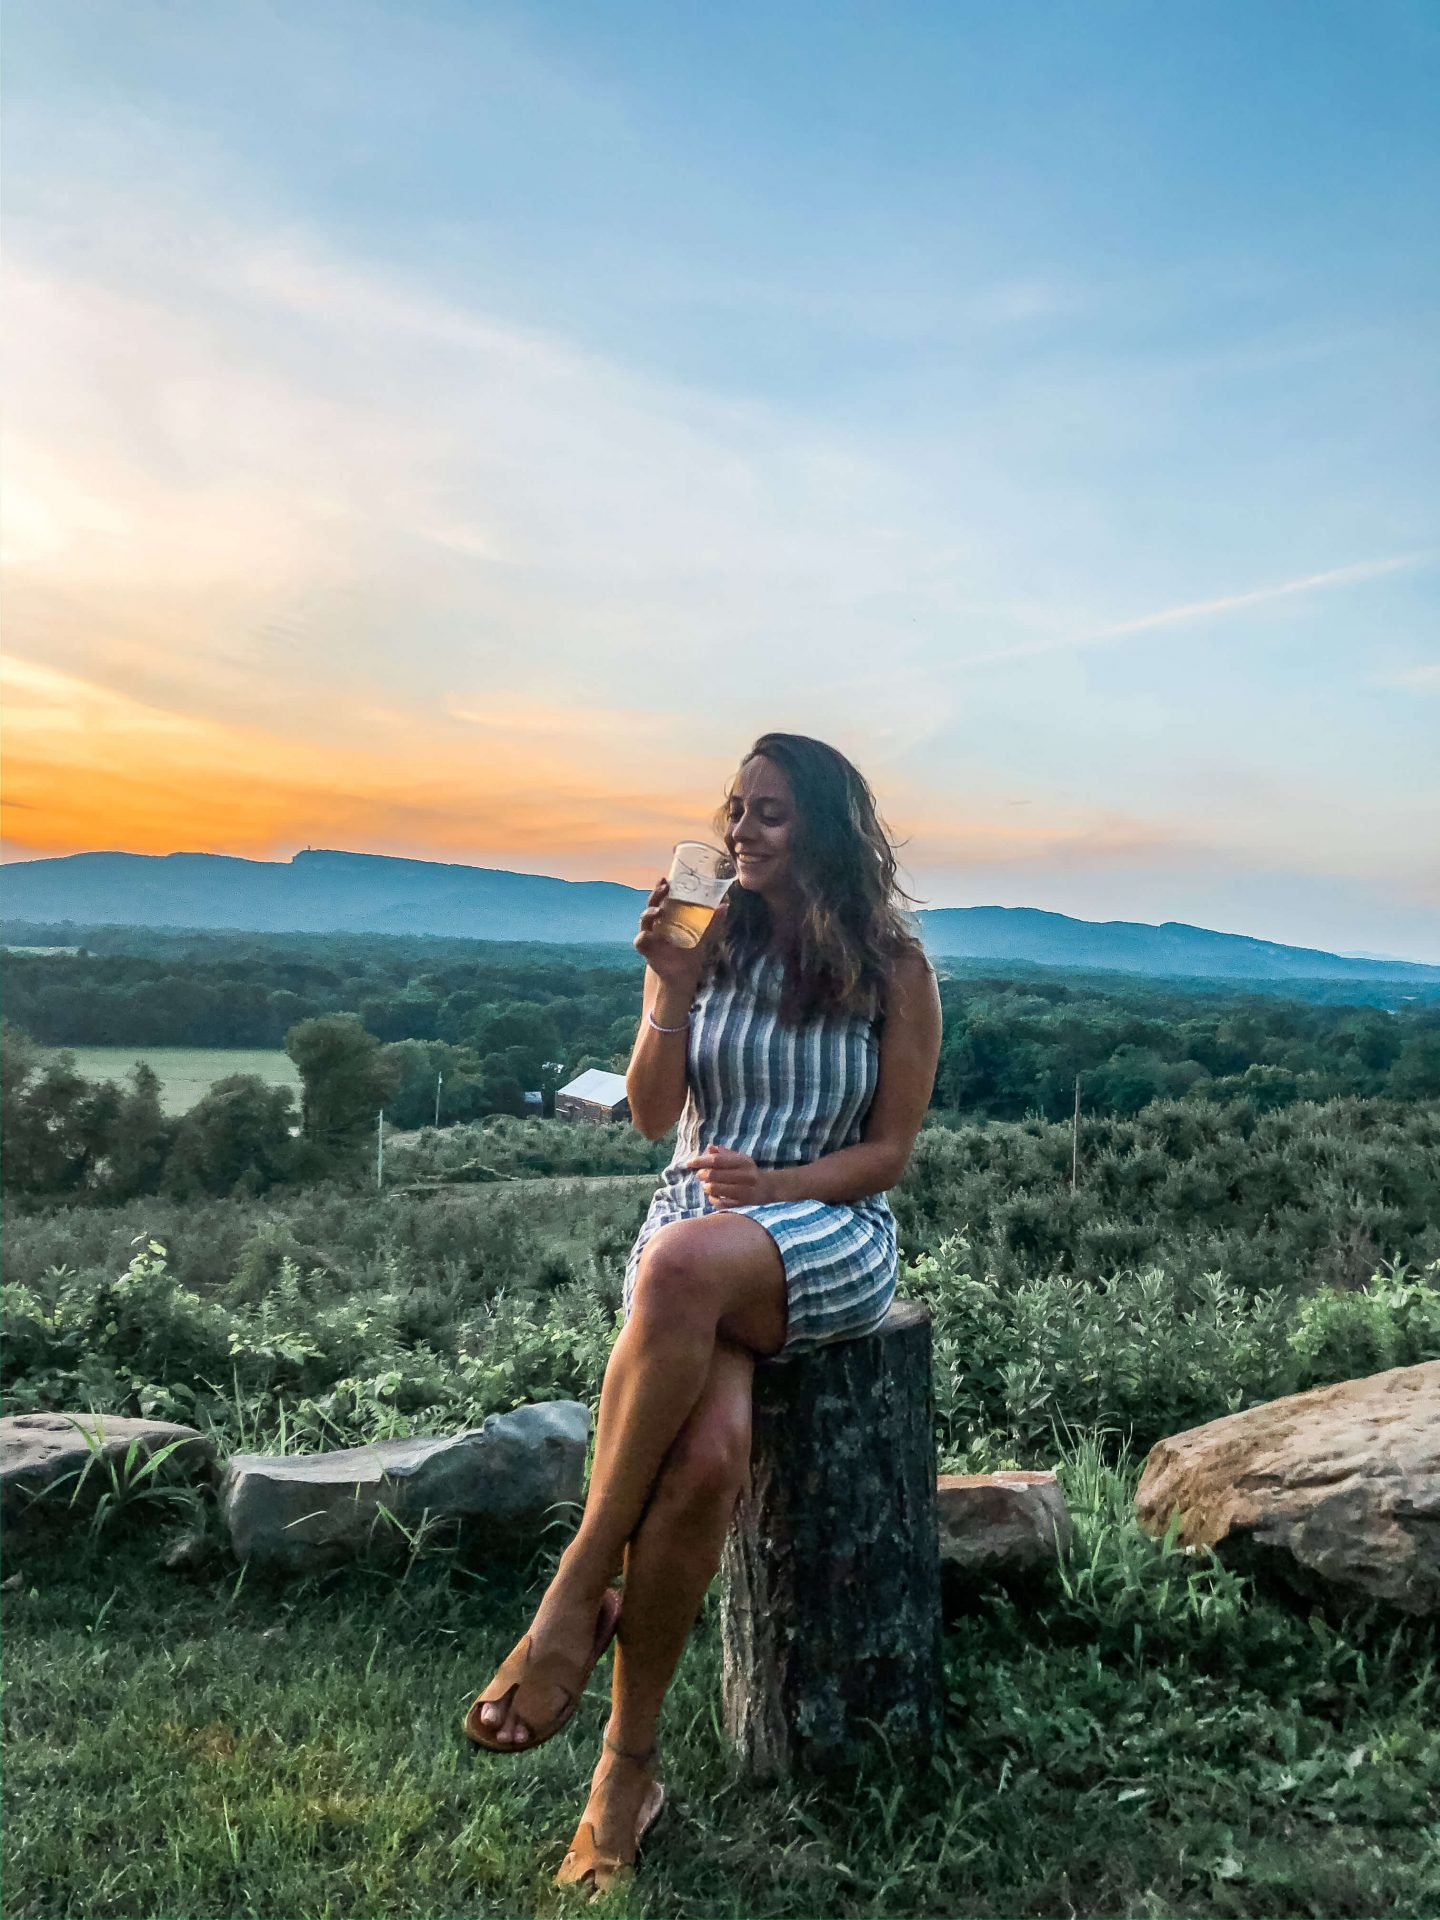 sunset at the cider house - best things to do in new paltz